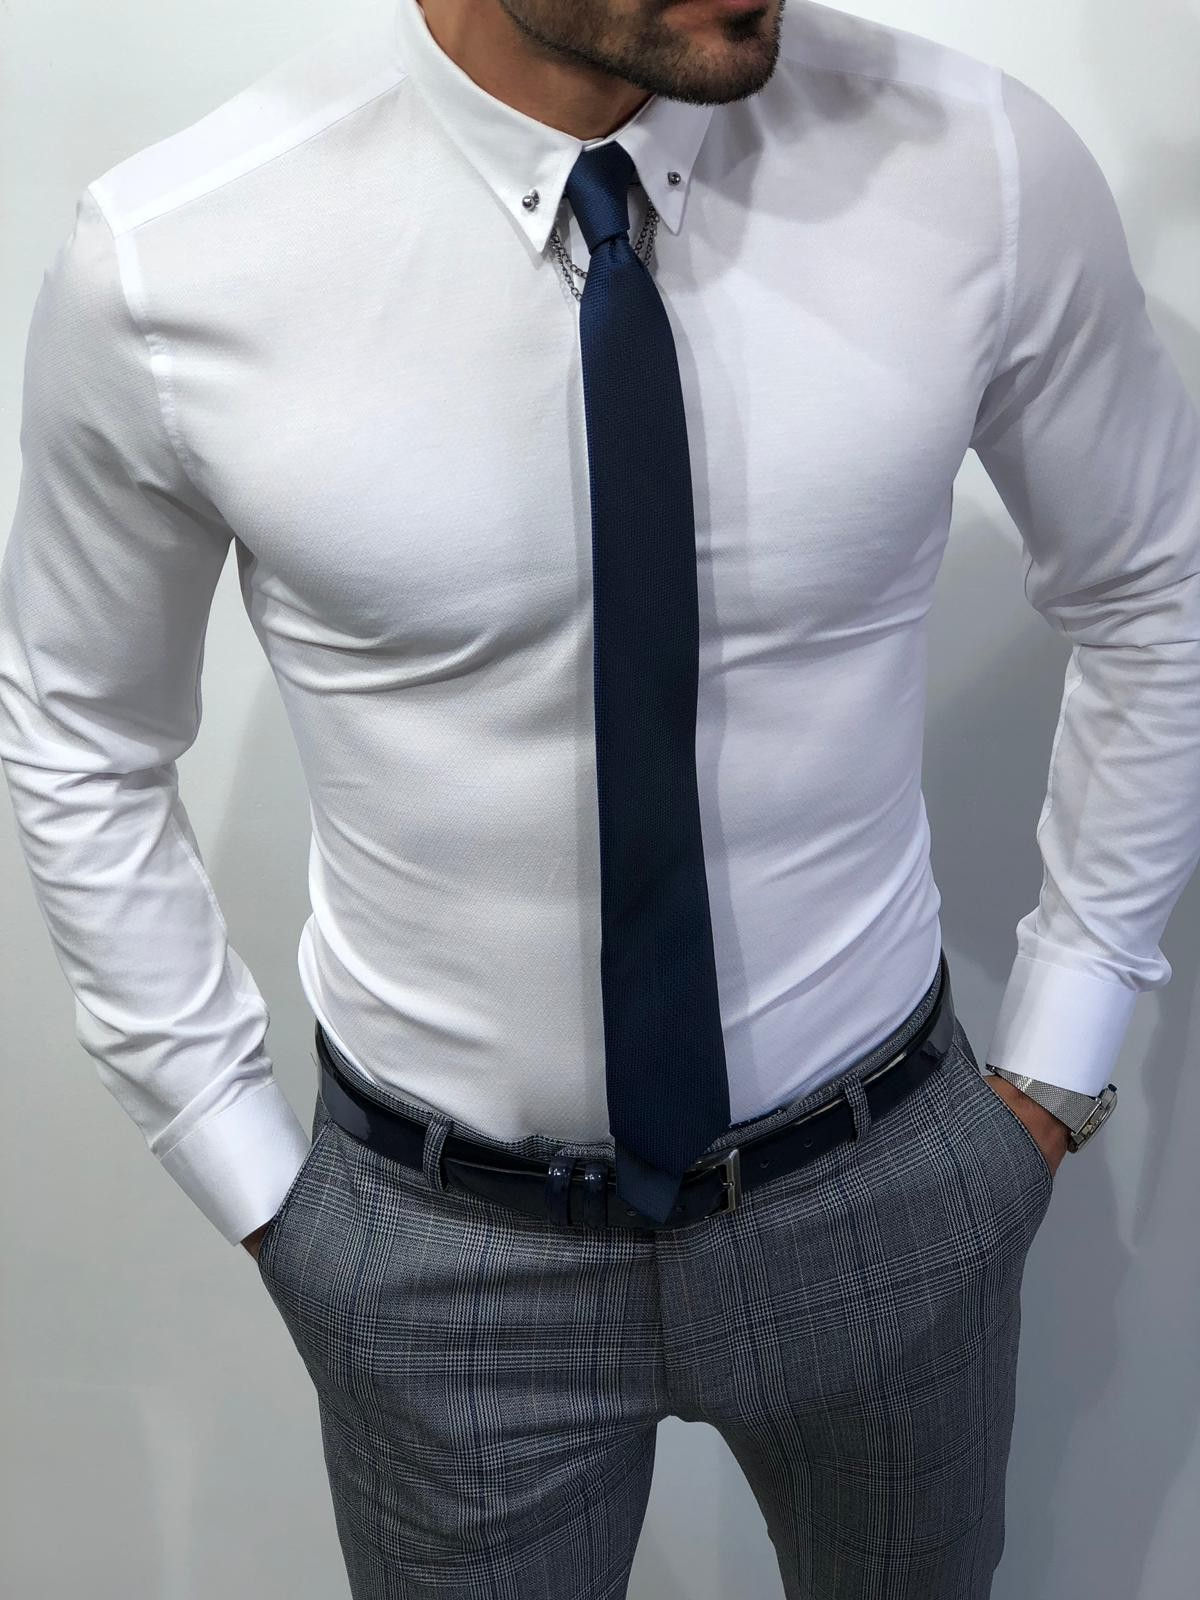 Buy Chain Collar Slim Fit Shirt White By Gentwithcom With